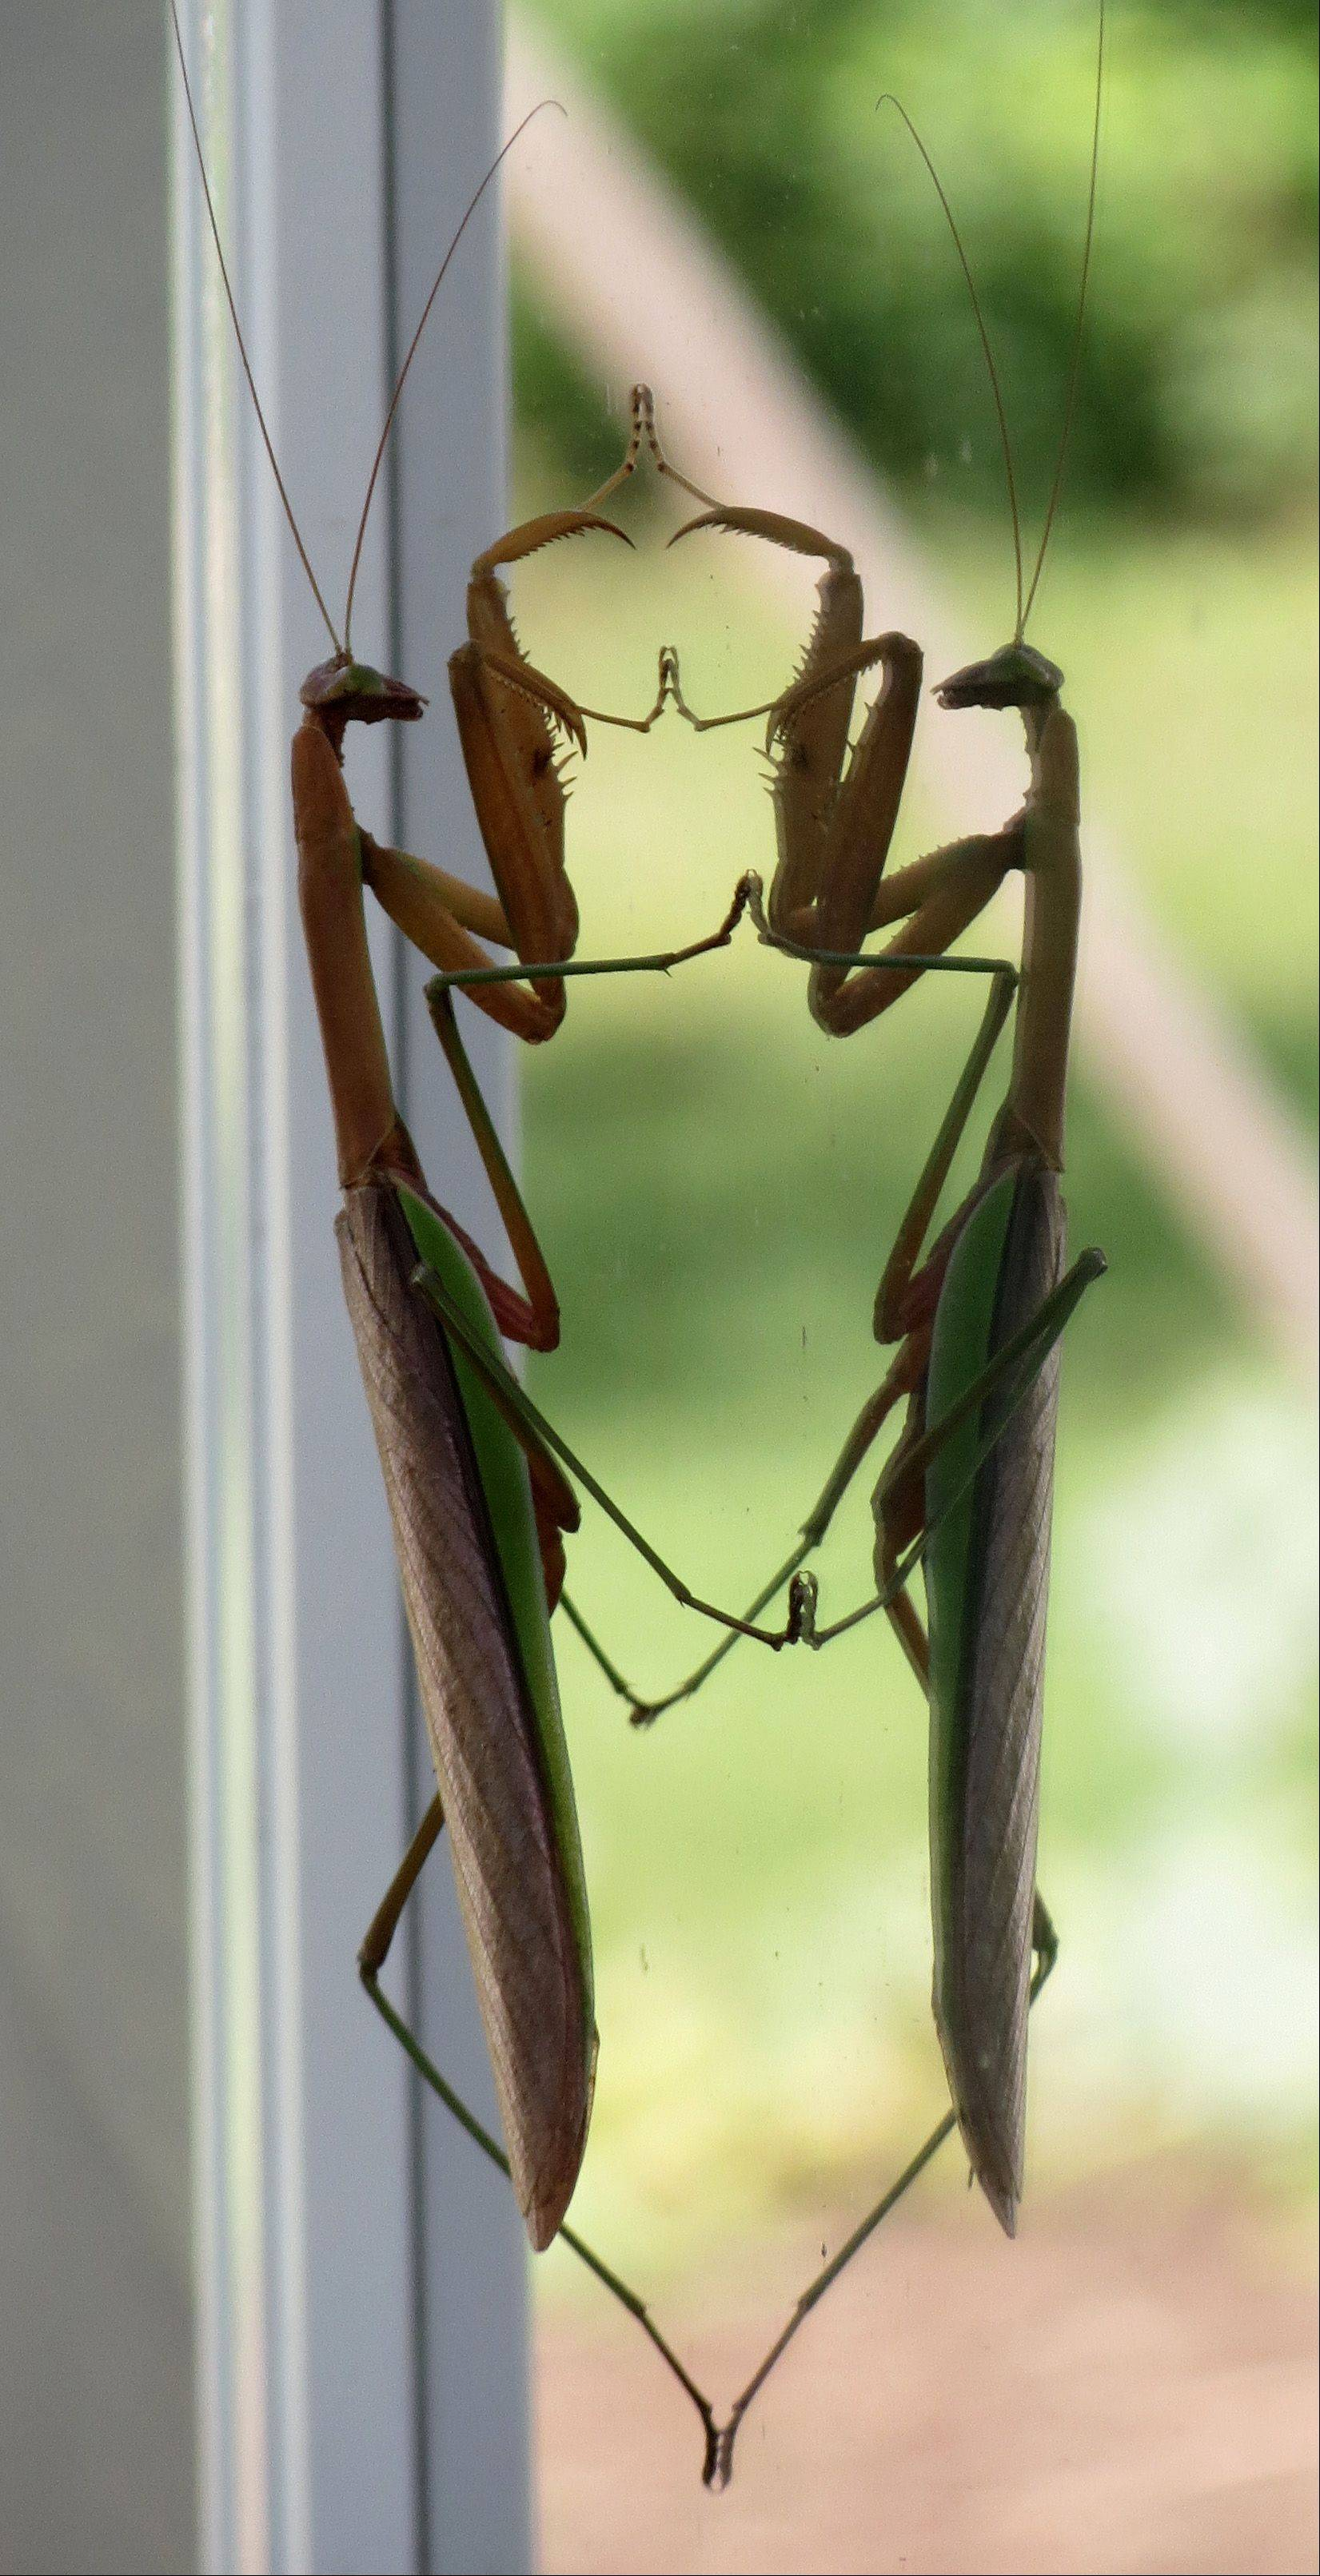 I found this Praying Mantis on our window looking at itself! It was moving its legs up and down and moving its body back and forth while watching its image do the same!